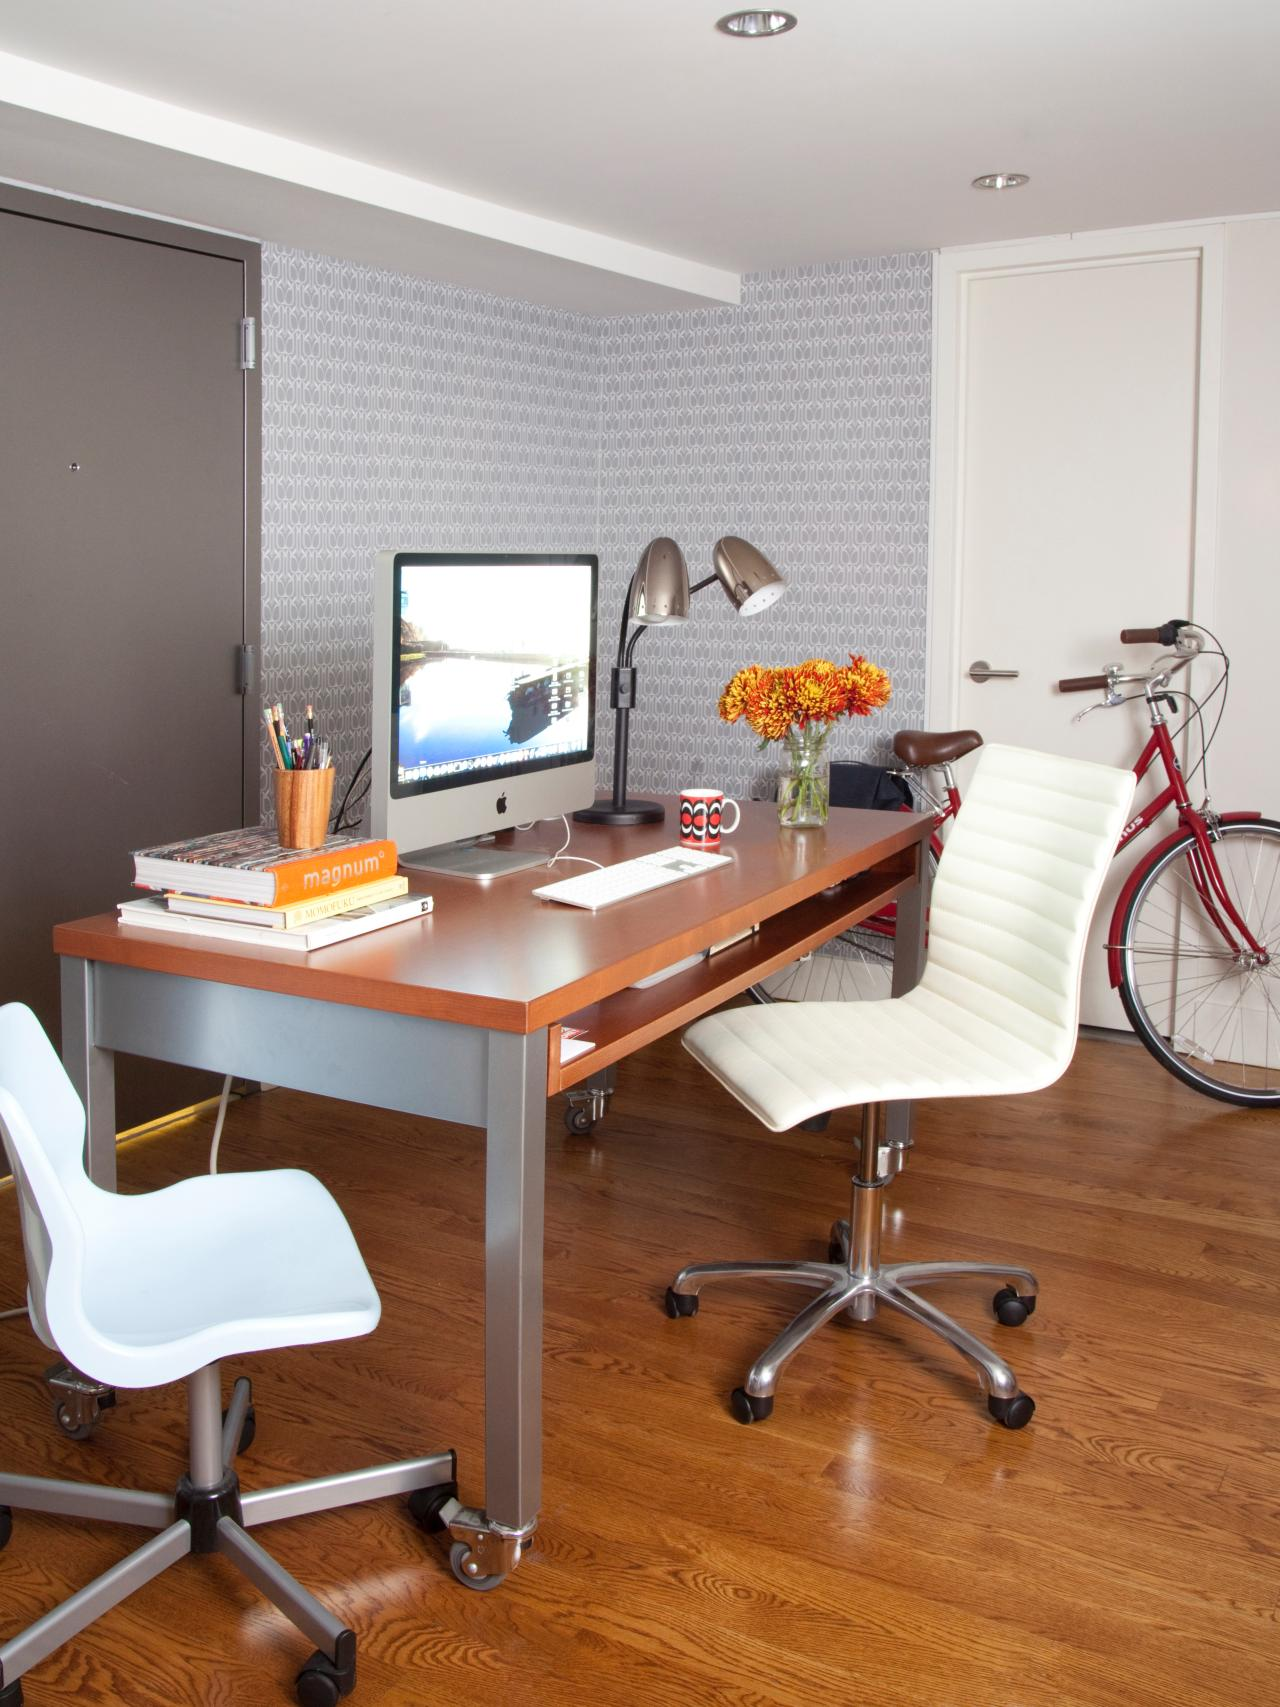 Small Space Ideas for the Bedroom and Home Office | HGTV